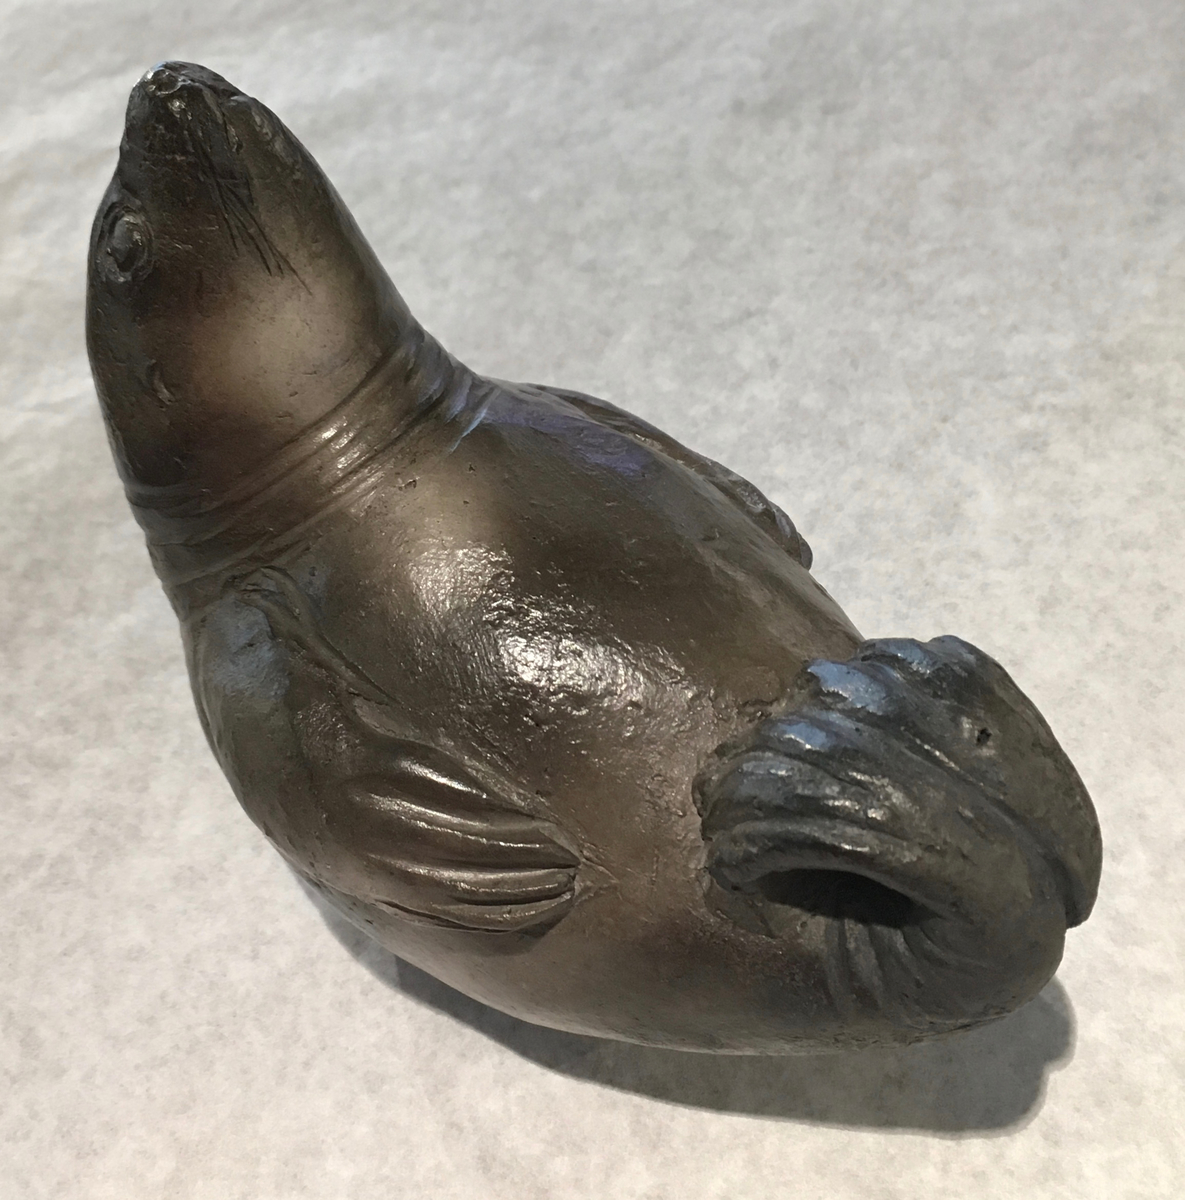 Adult seal